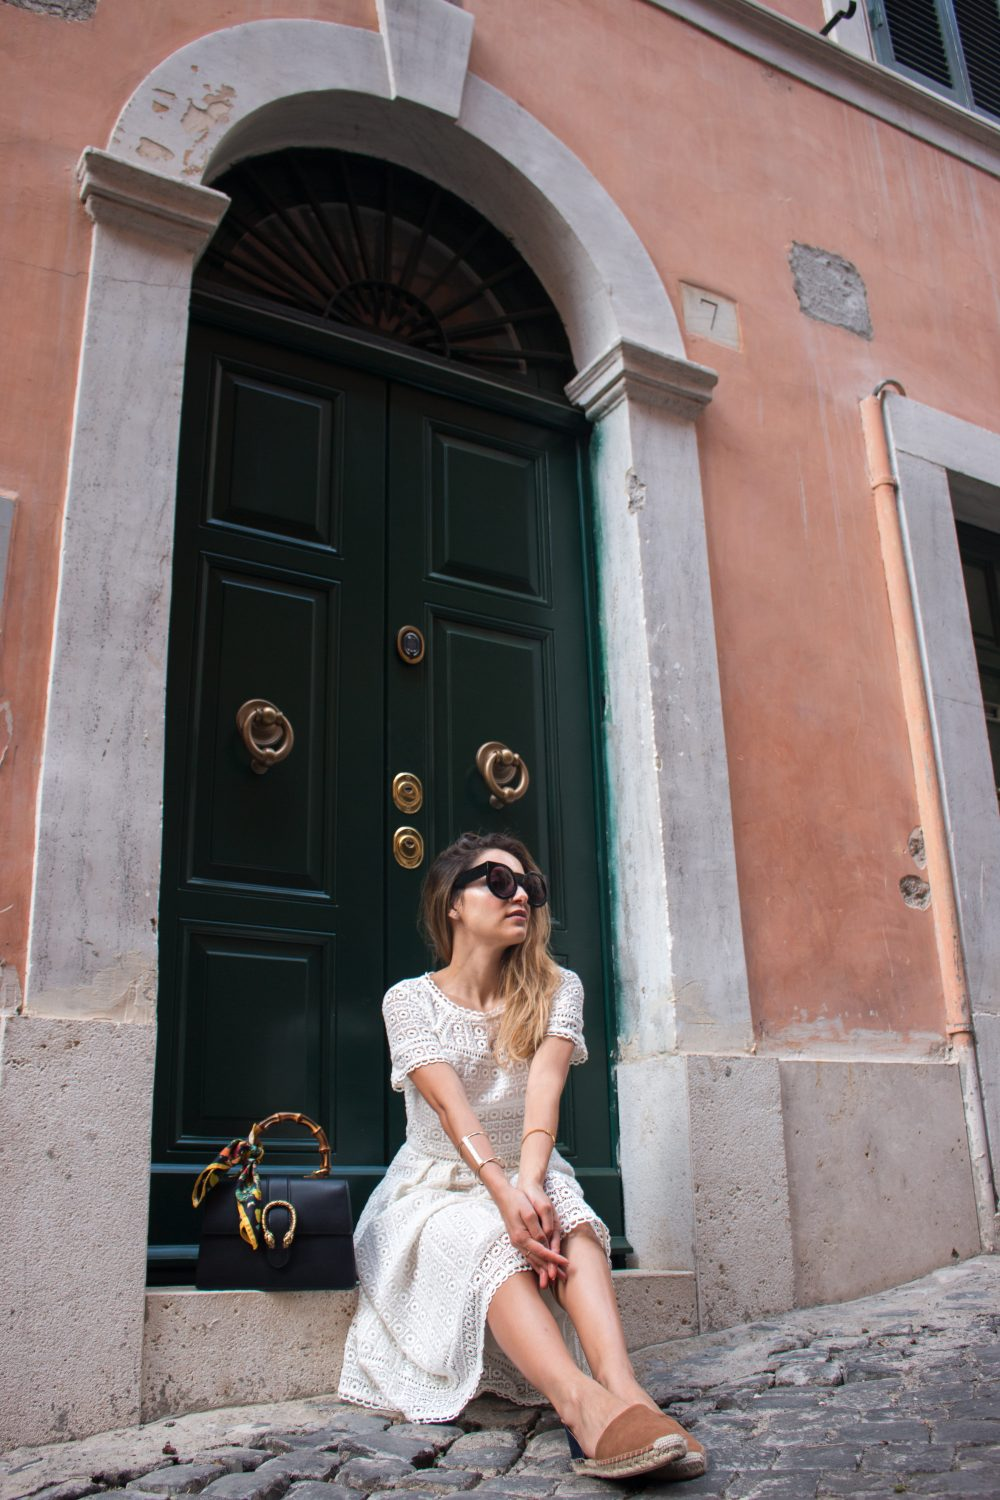 Whitney's Wonderland UK Top Luxury Travel Blogger wears Boden white lace midi dress, Wildfox Couture granny sunglasses and Gucci dionysus bag in Rome